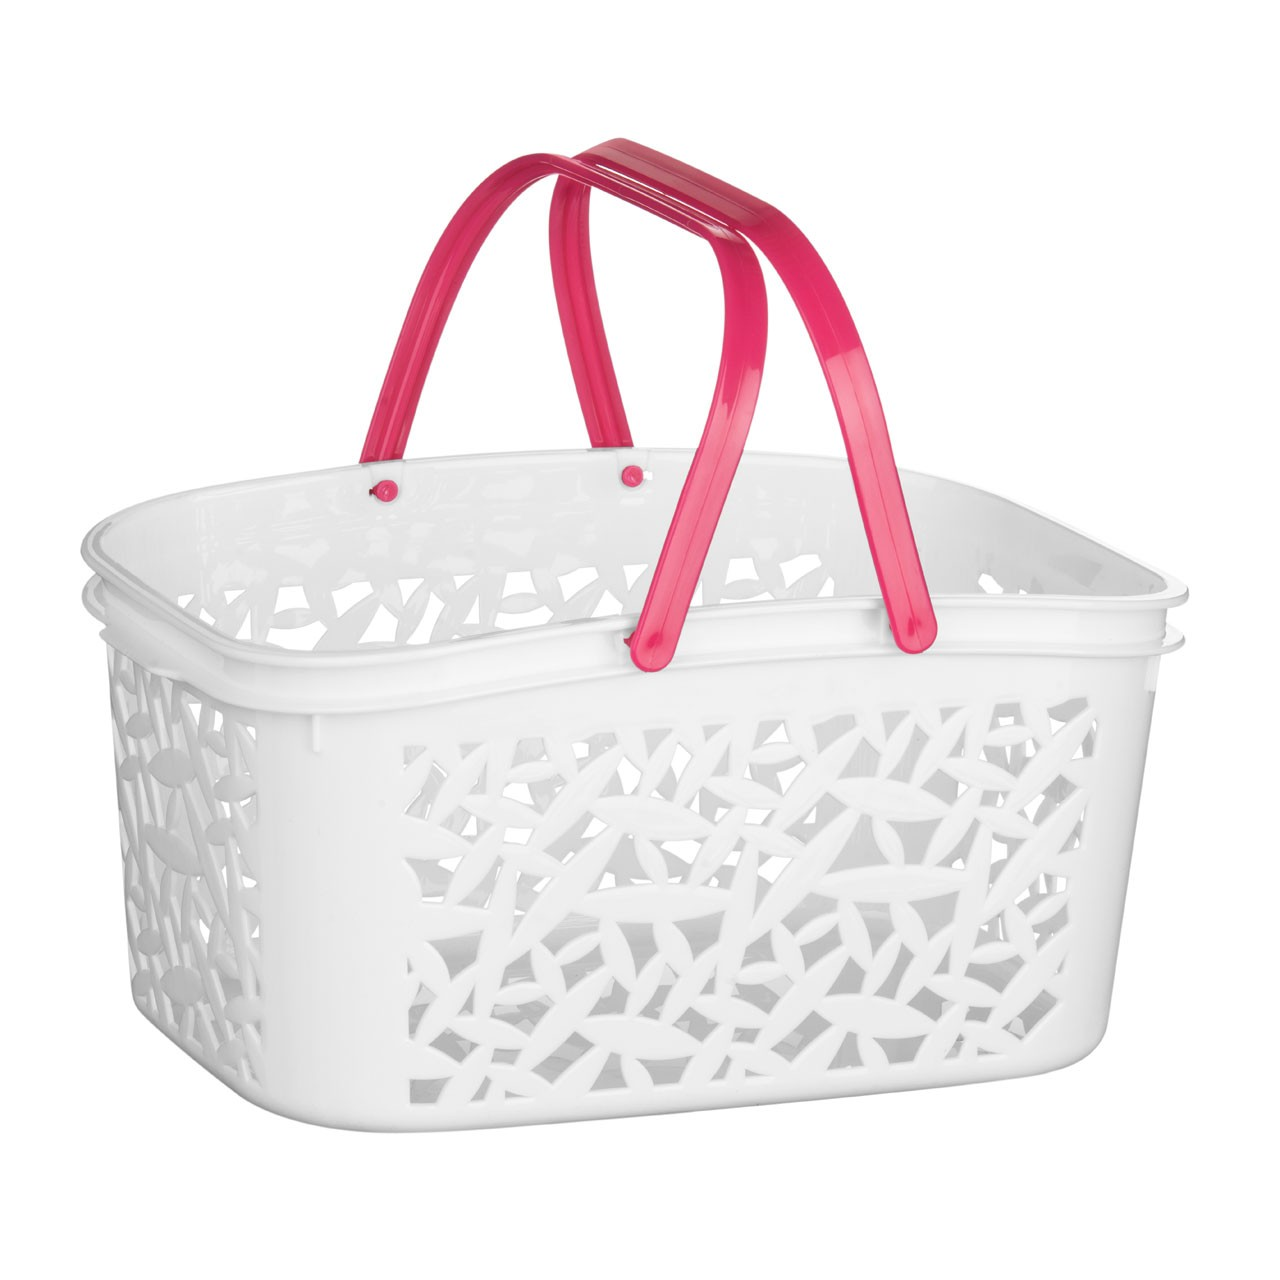 Storage Basket Plastic 4.5 Ltr Available in 2 Colours Ideal For